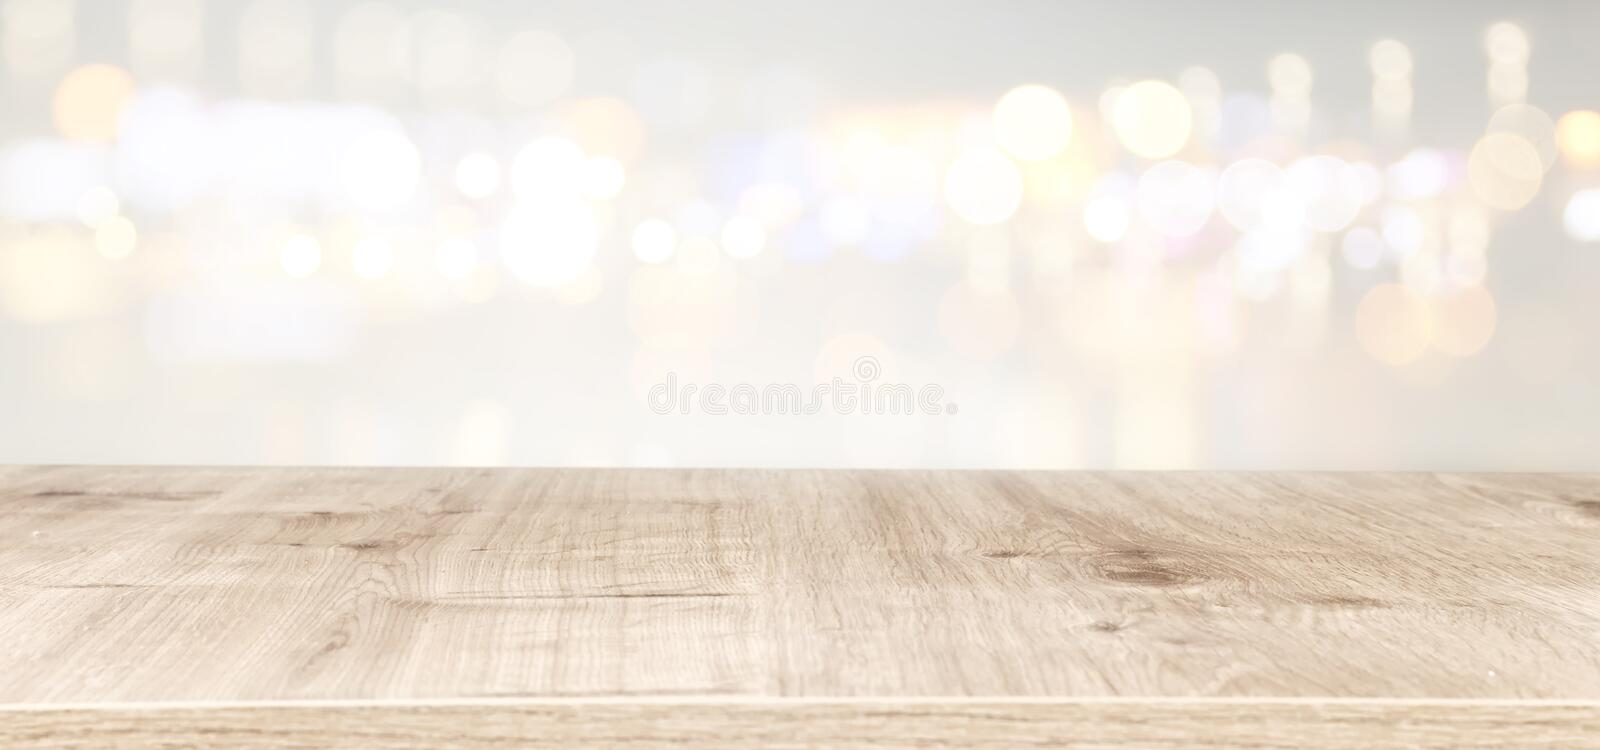 Background of wooden table in front of abstract blurred window light. banner.  stock photography